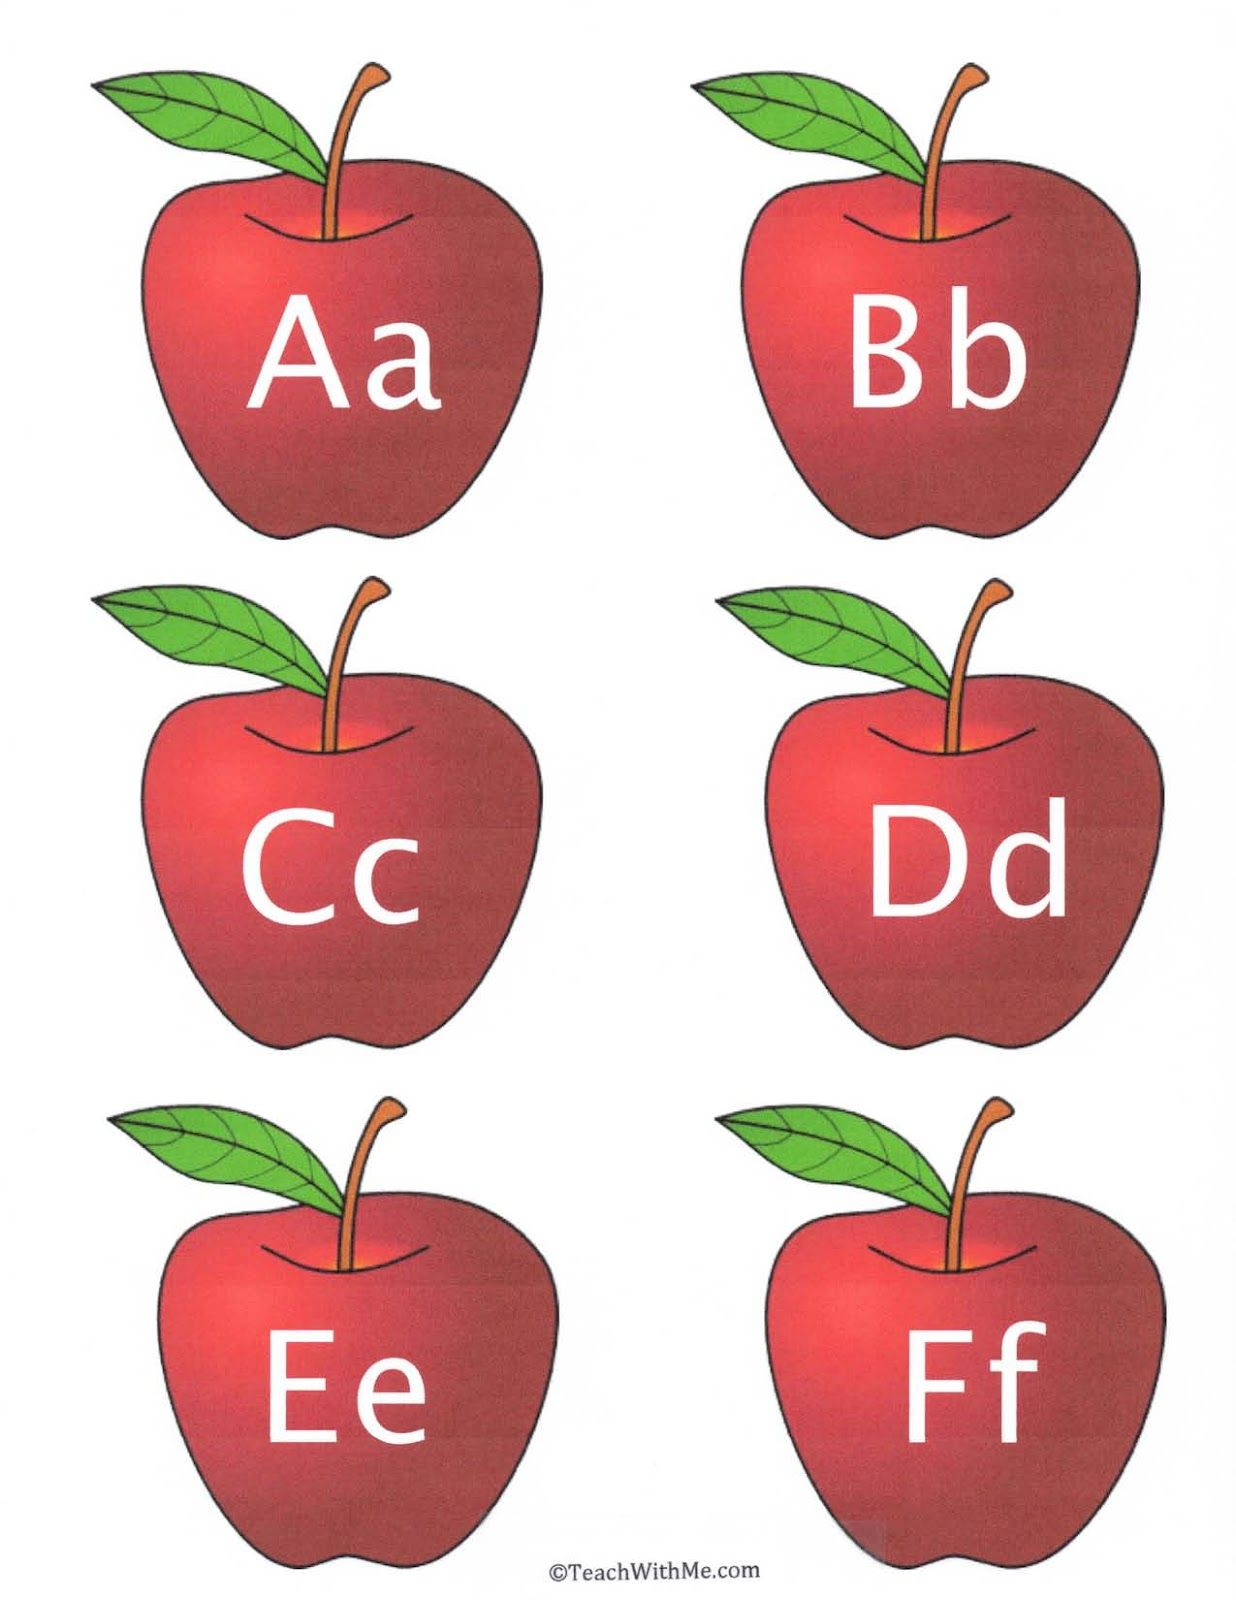 Apple Alphabet Cards With Images